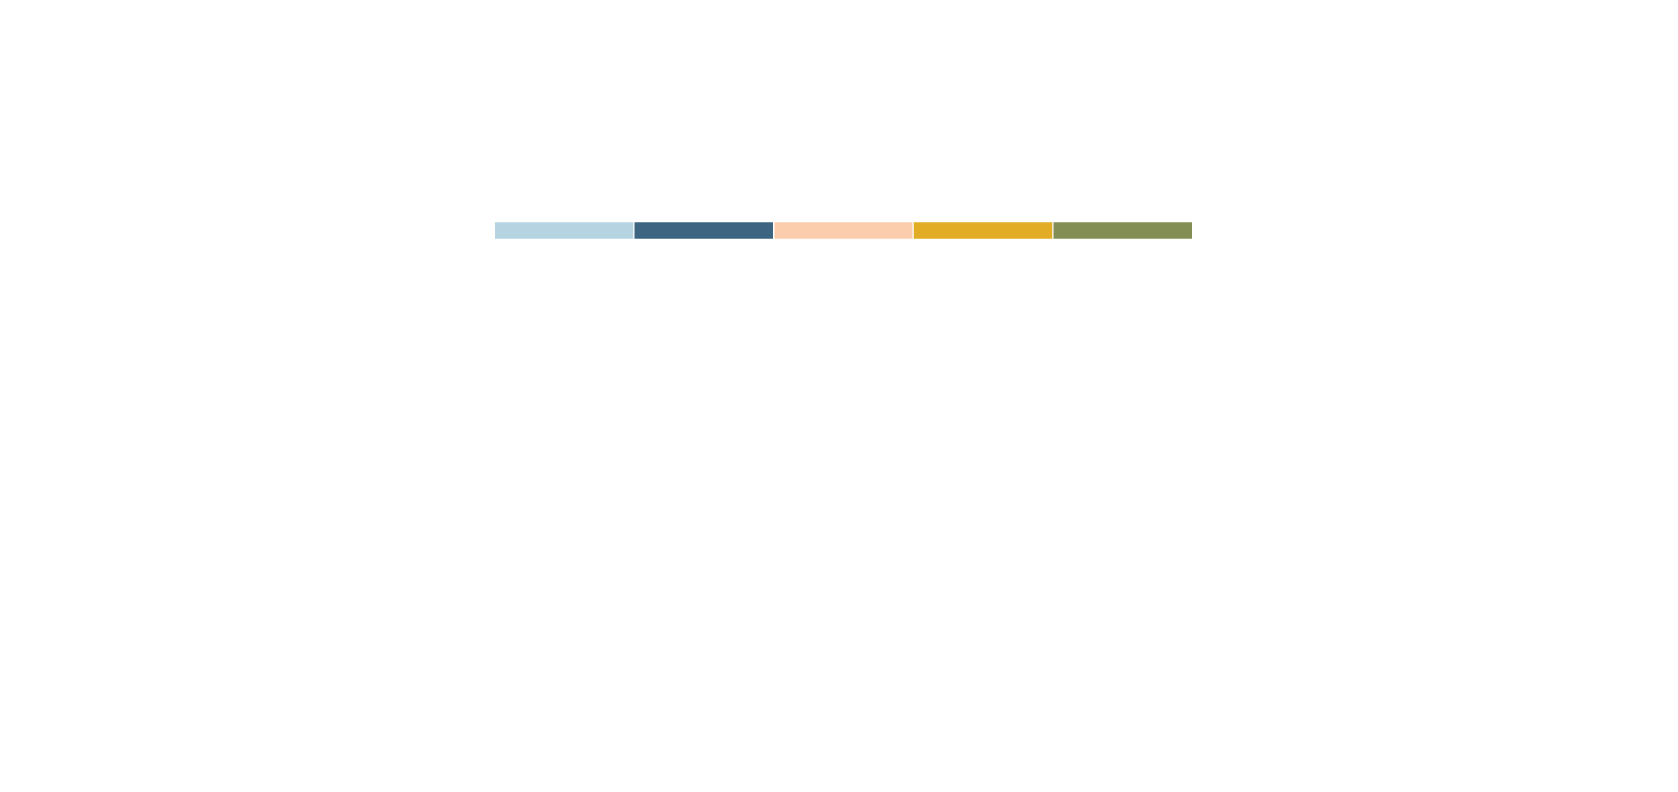 Big City 2020 Dallas Texas